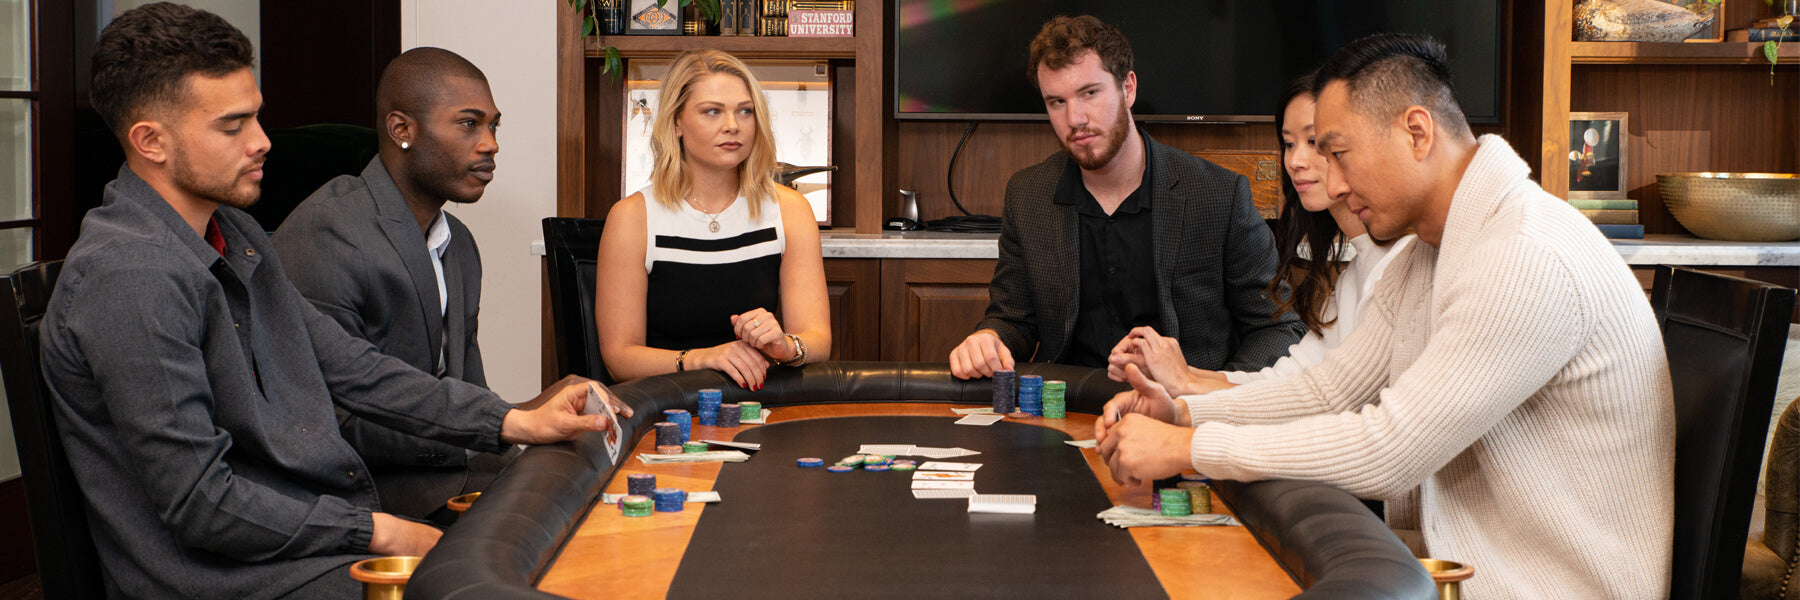 The Best Poker Tables & Card Tables | 2021 Buying Guide - Just Poker Tables